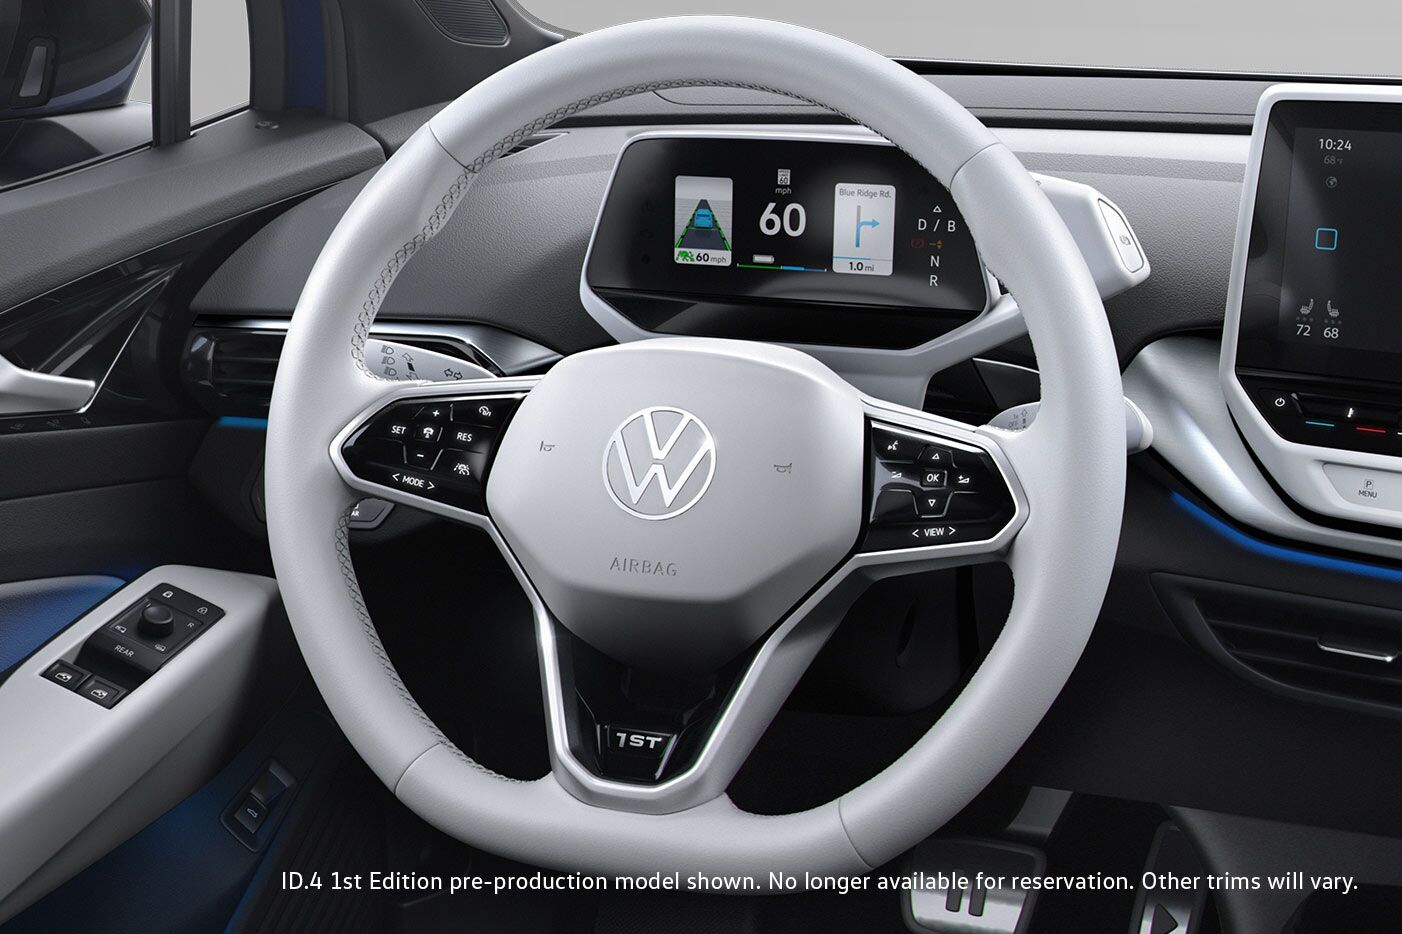 Steering wheel of Volkswagen ID.4